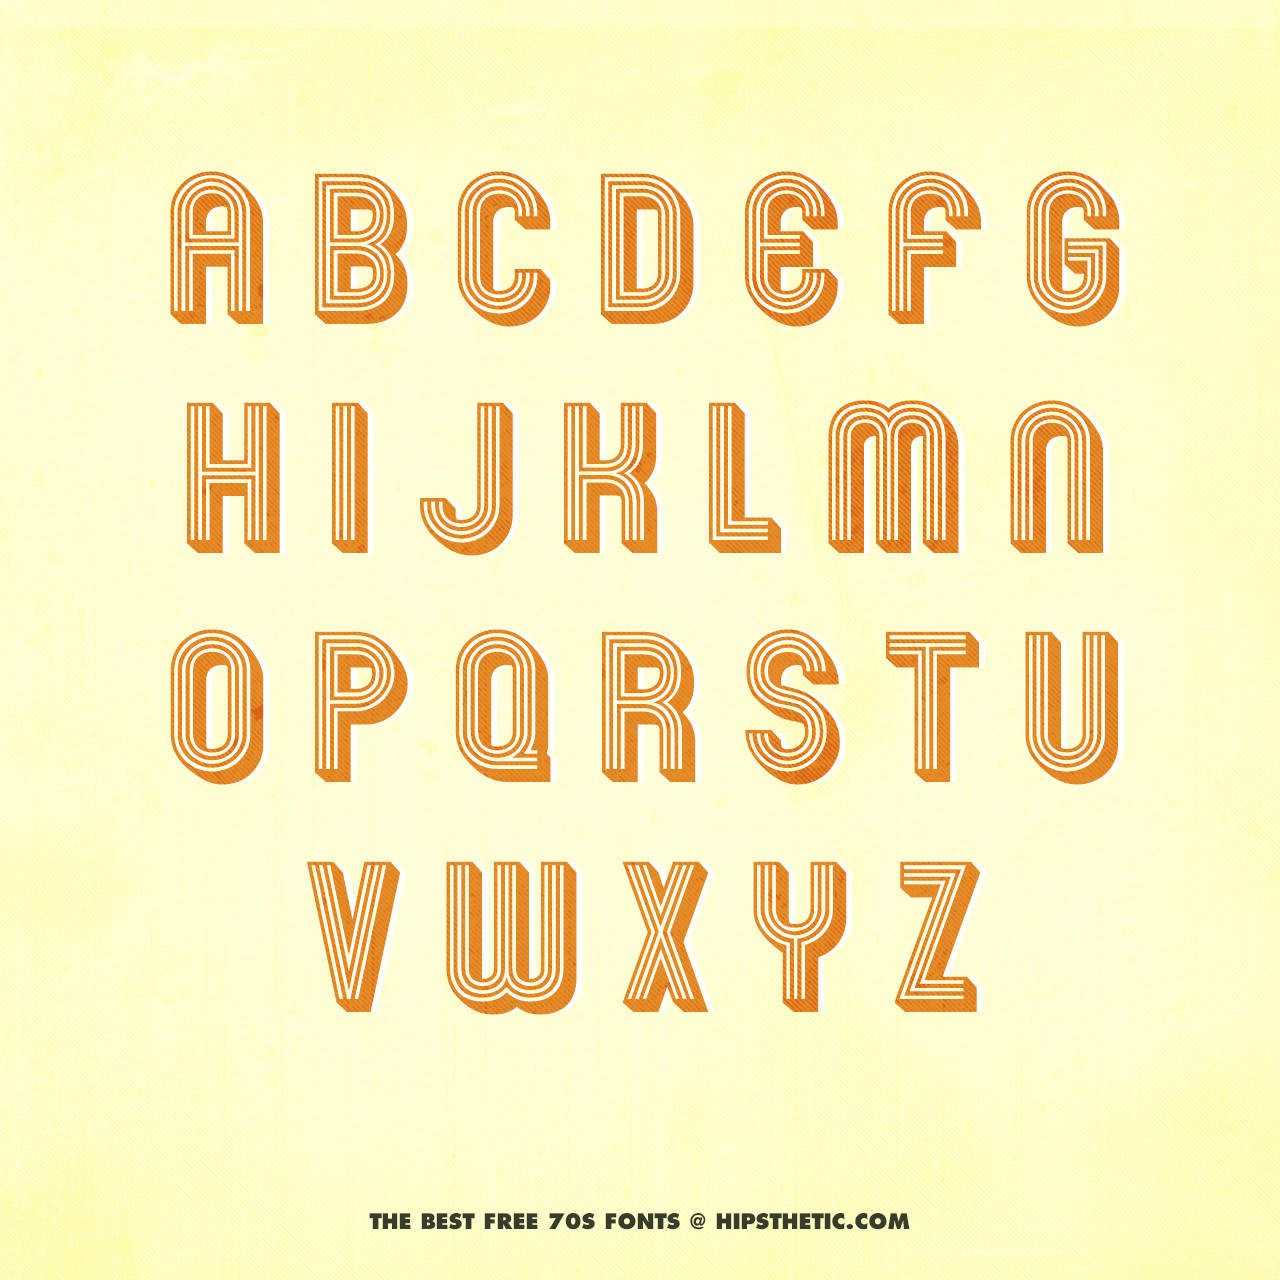 10 Best Free 3D Fonts Available Online Free 70s fonts